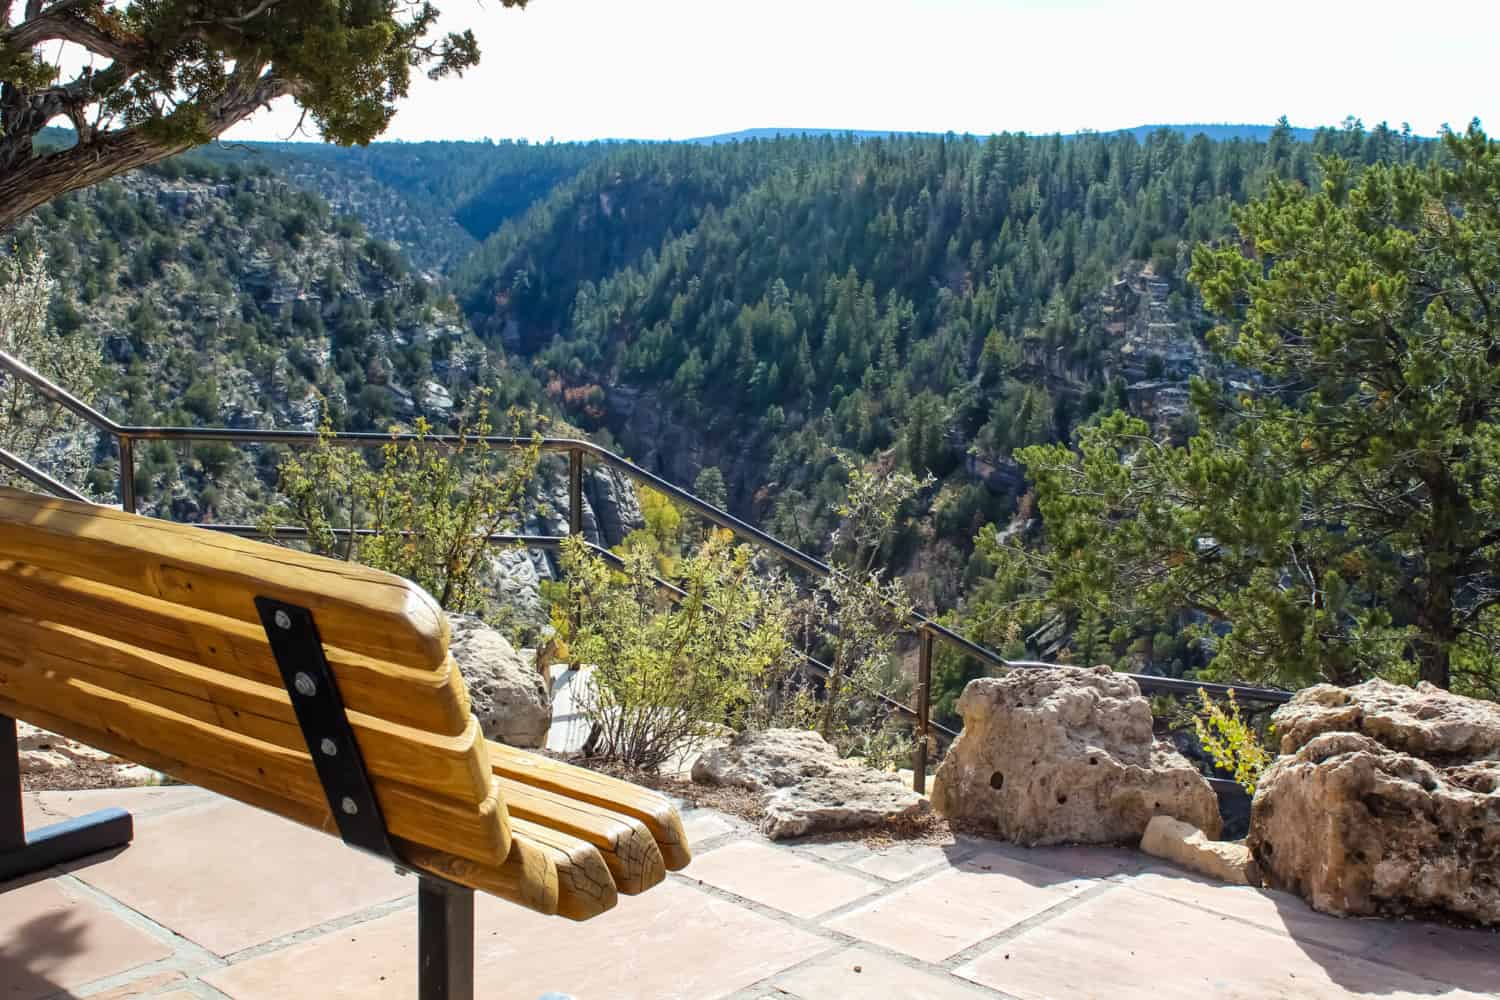 Bench overlooking the view in Walnut Canyon National Monument near Flagstaff, Arizona